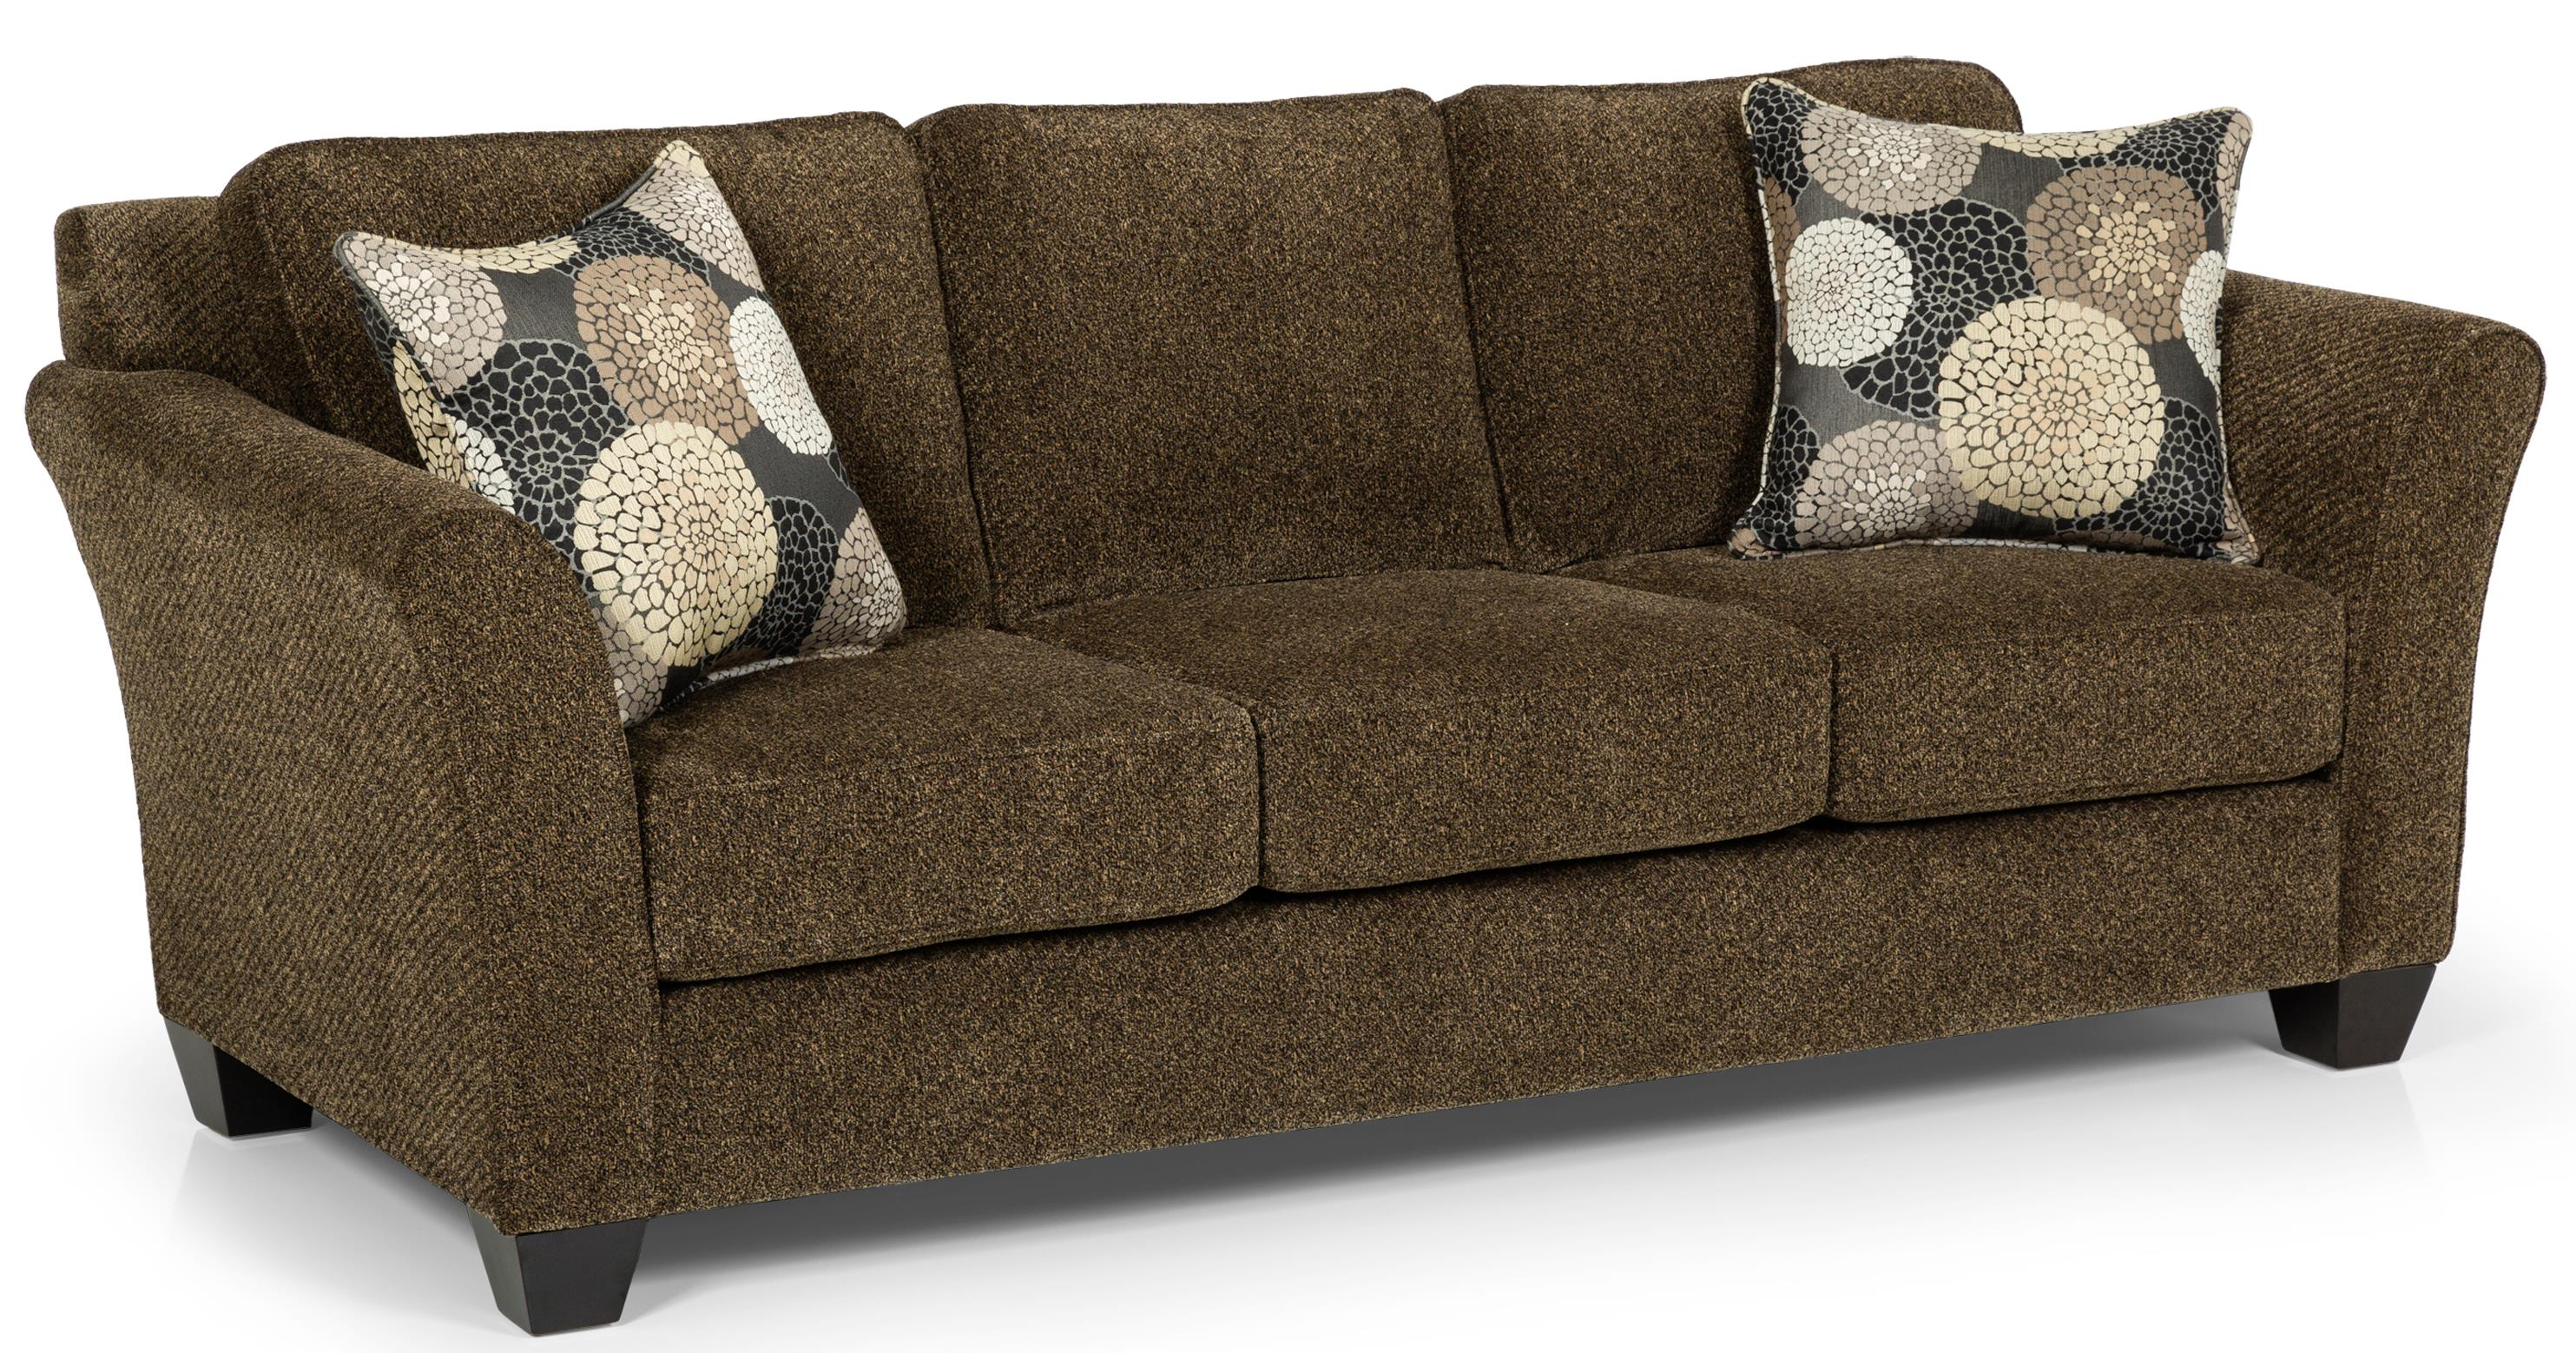 Stanton 184 Contemporary Gel Sleeper Sofa With Flared Arms